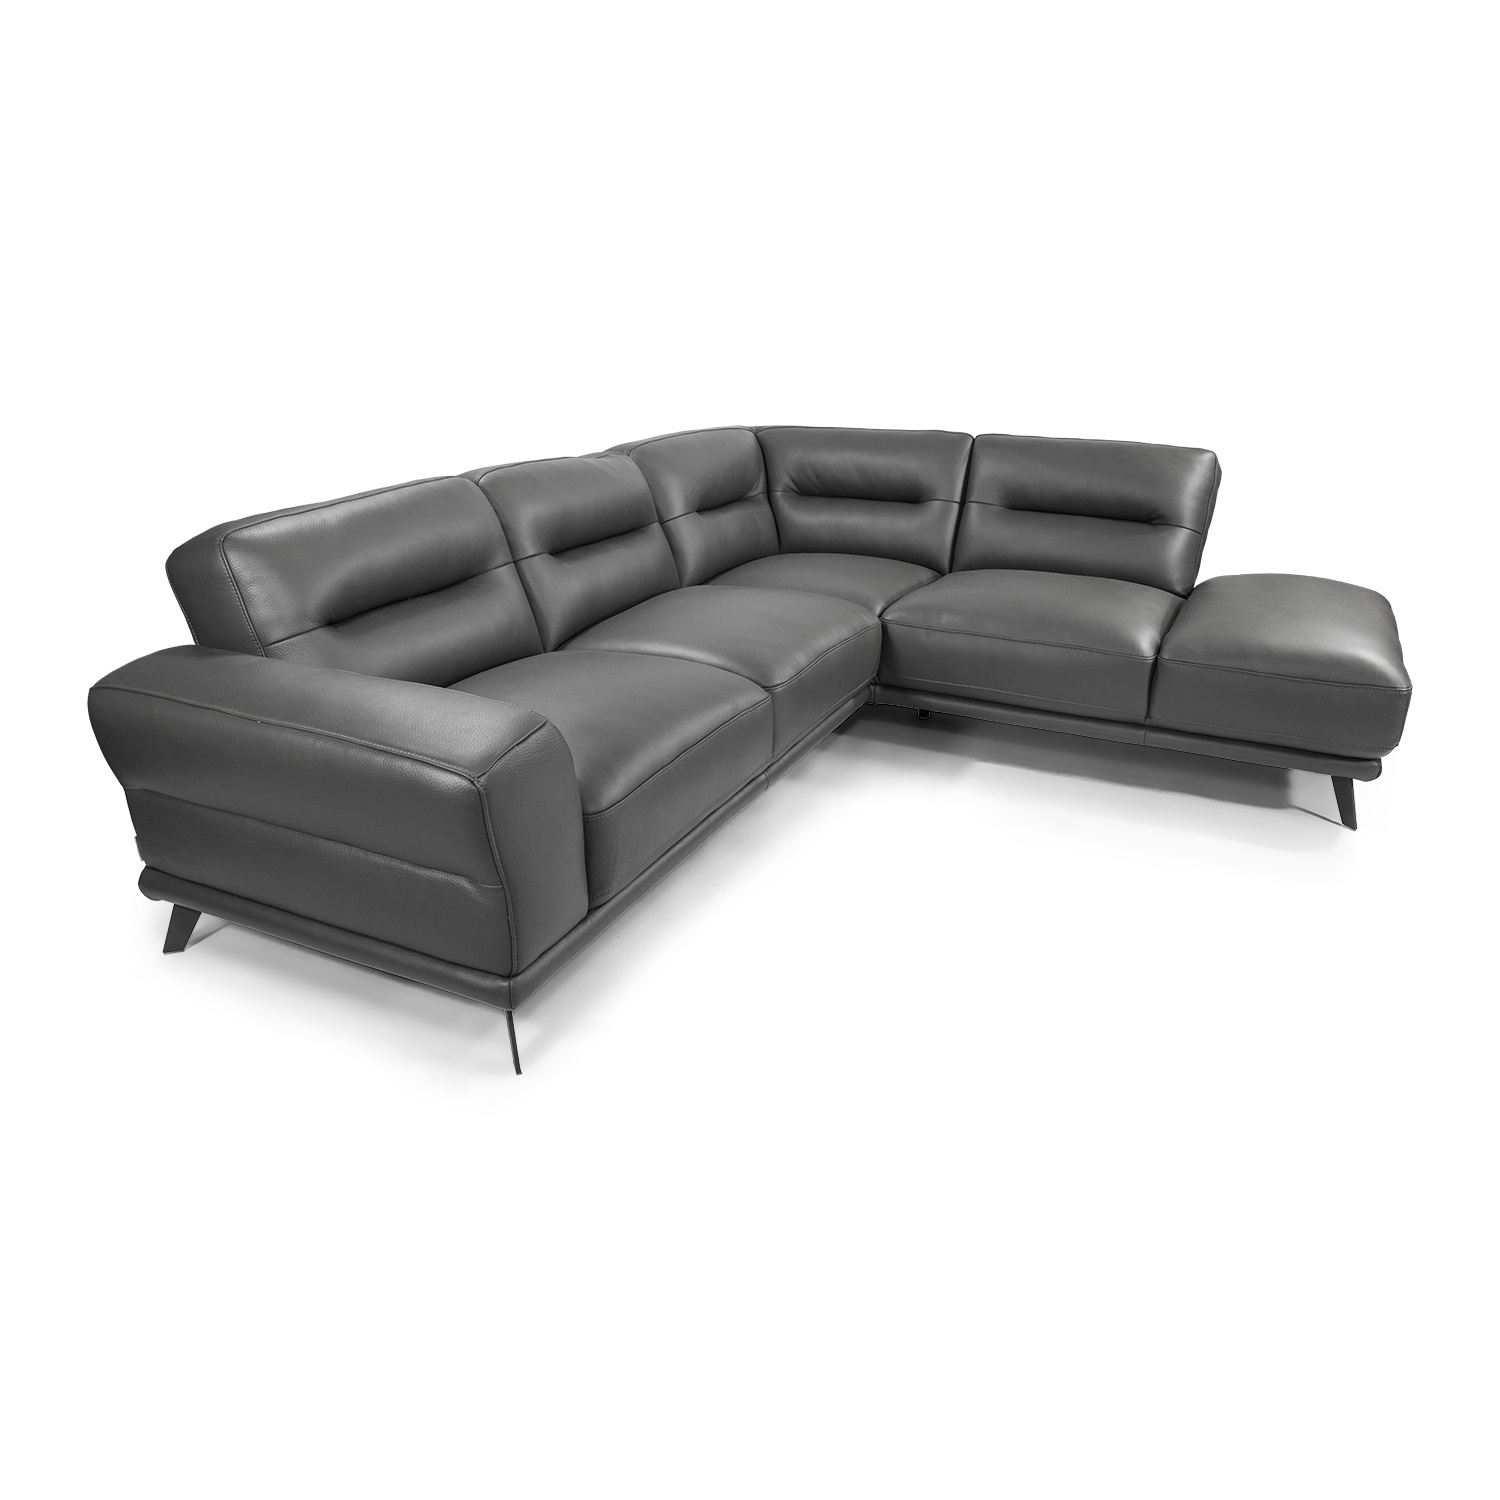 The Haven Sectional